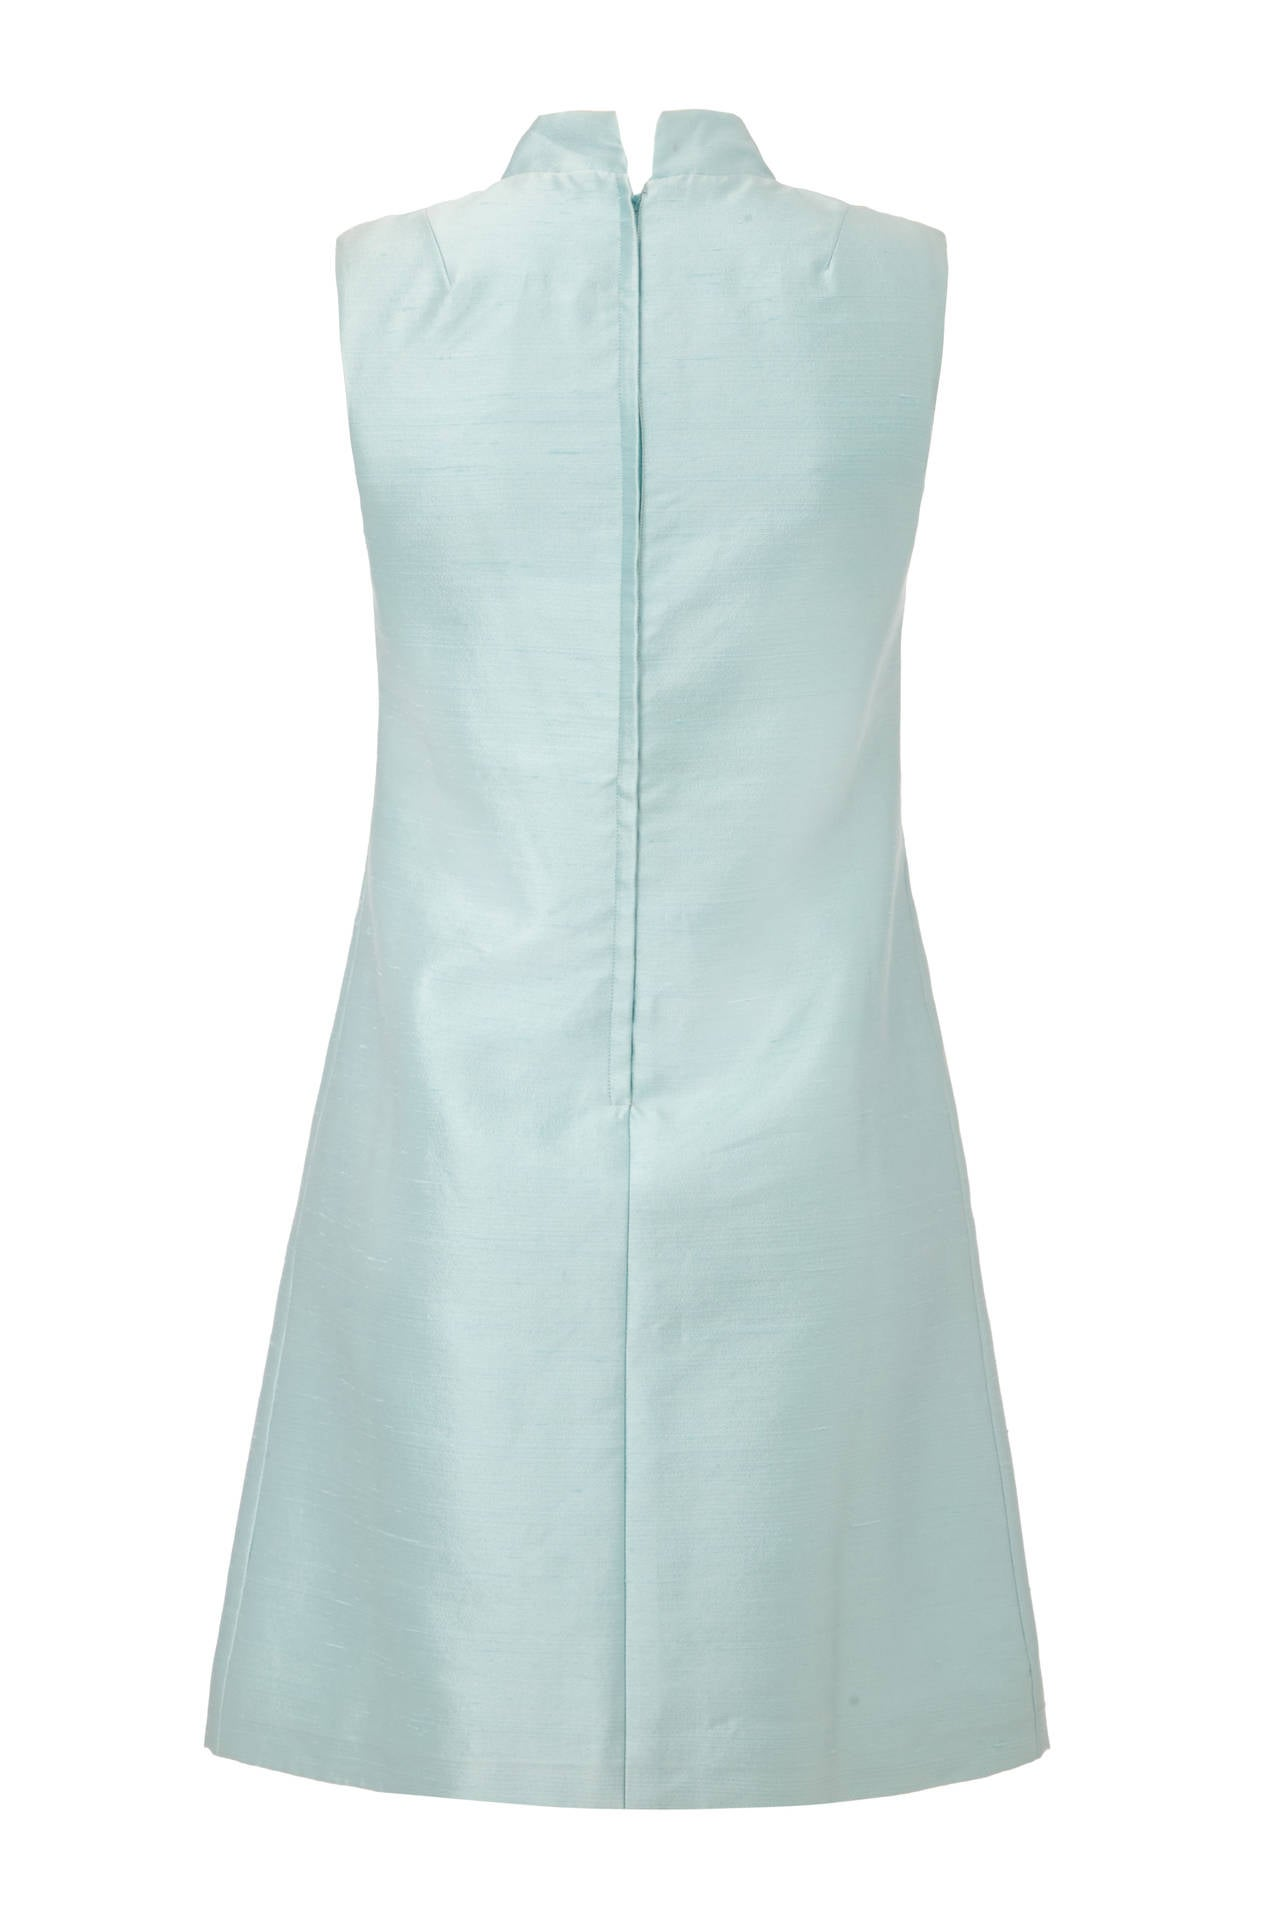 1960s Peck and Peck Pale Blue Silk Mini Dress 2